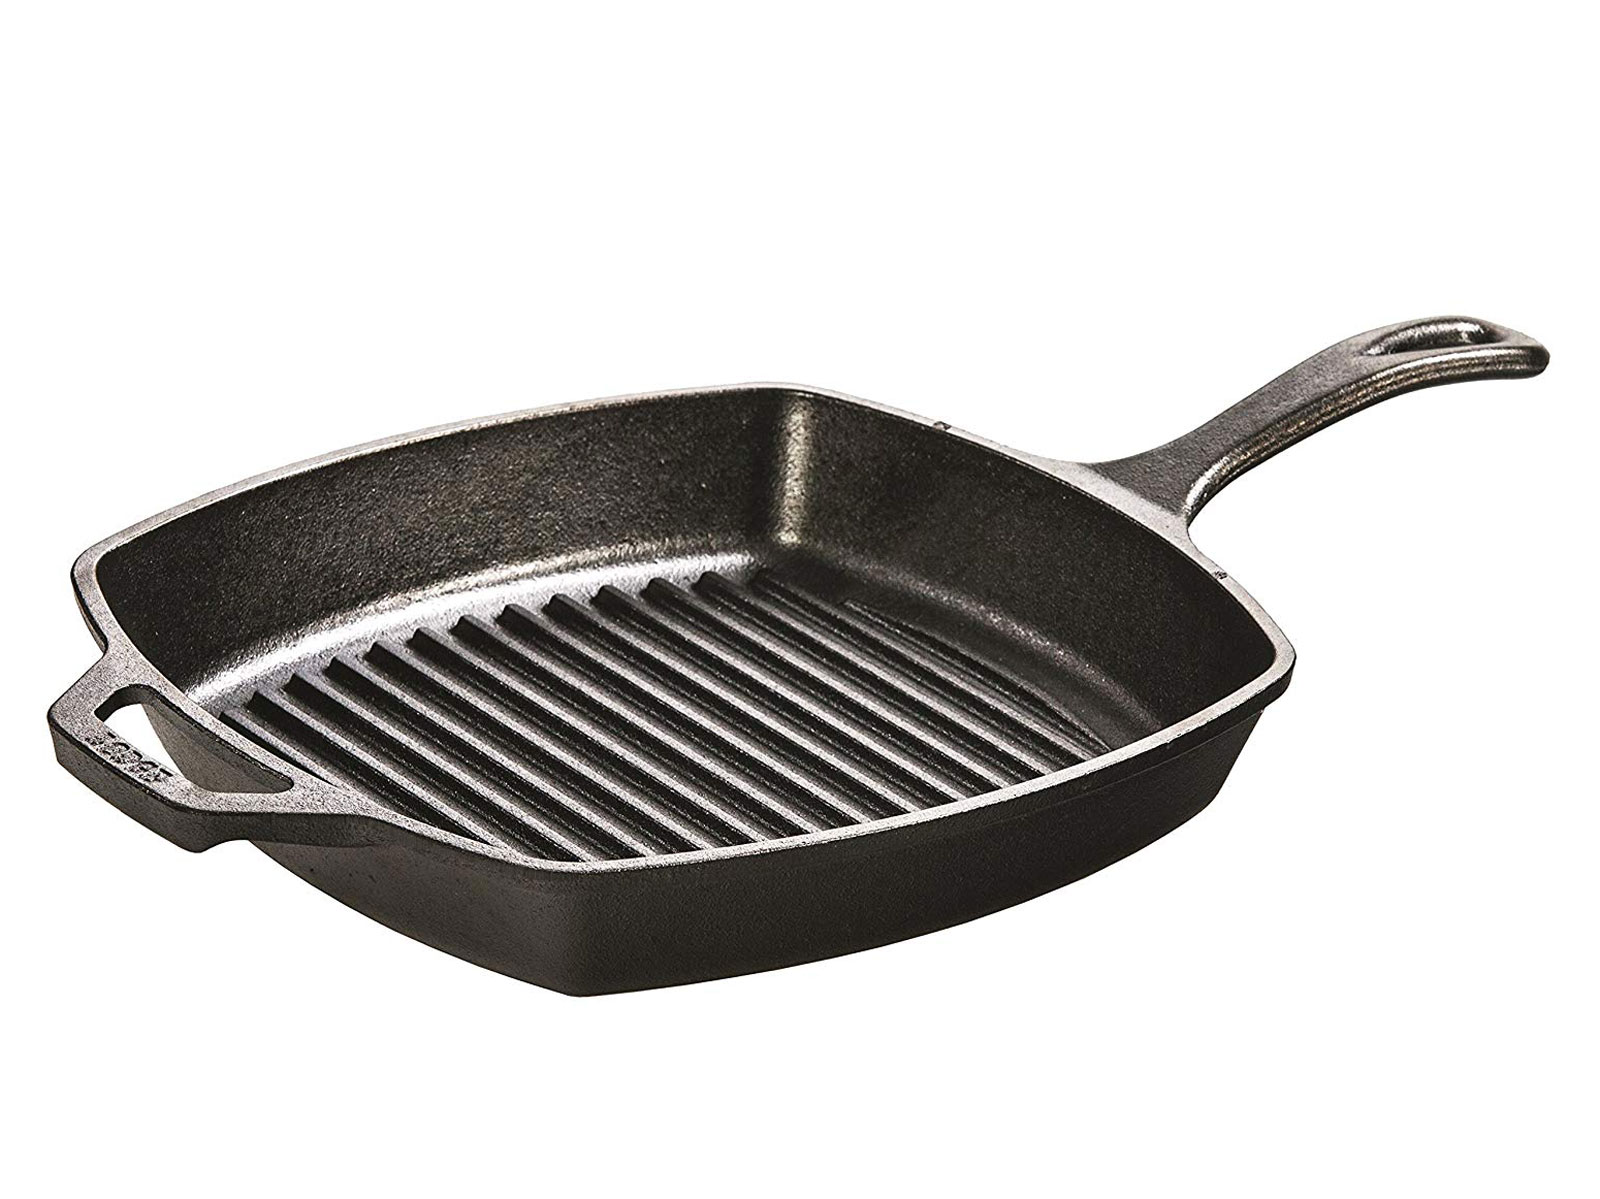 lodge griddle pan